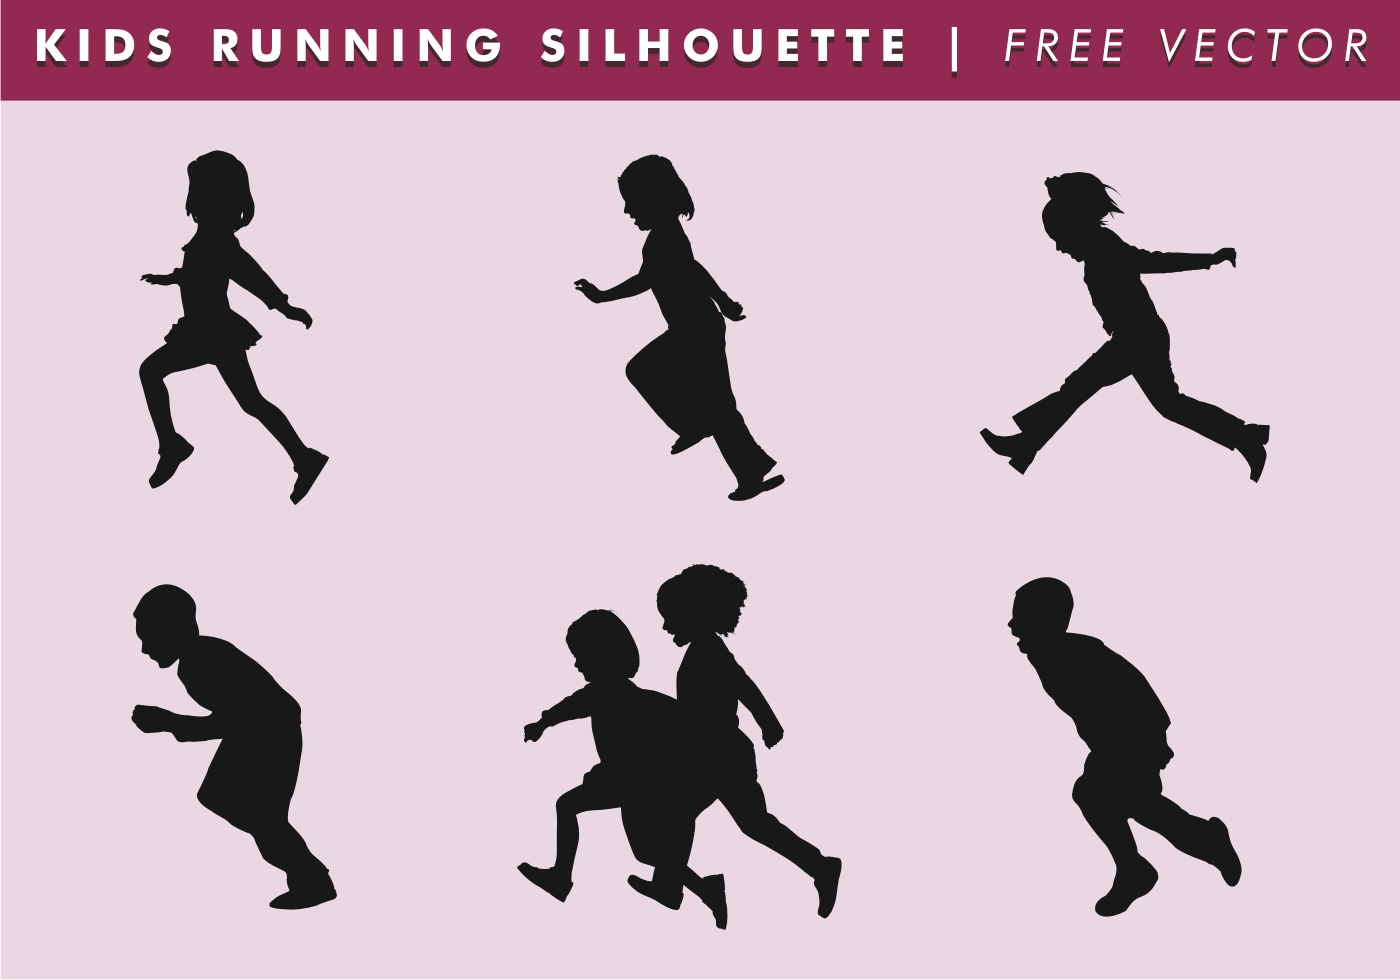 Kids Silhouette Free Vector.